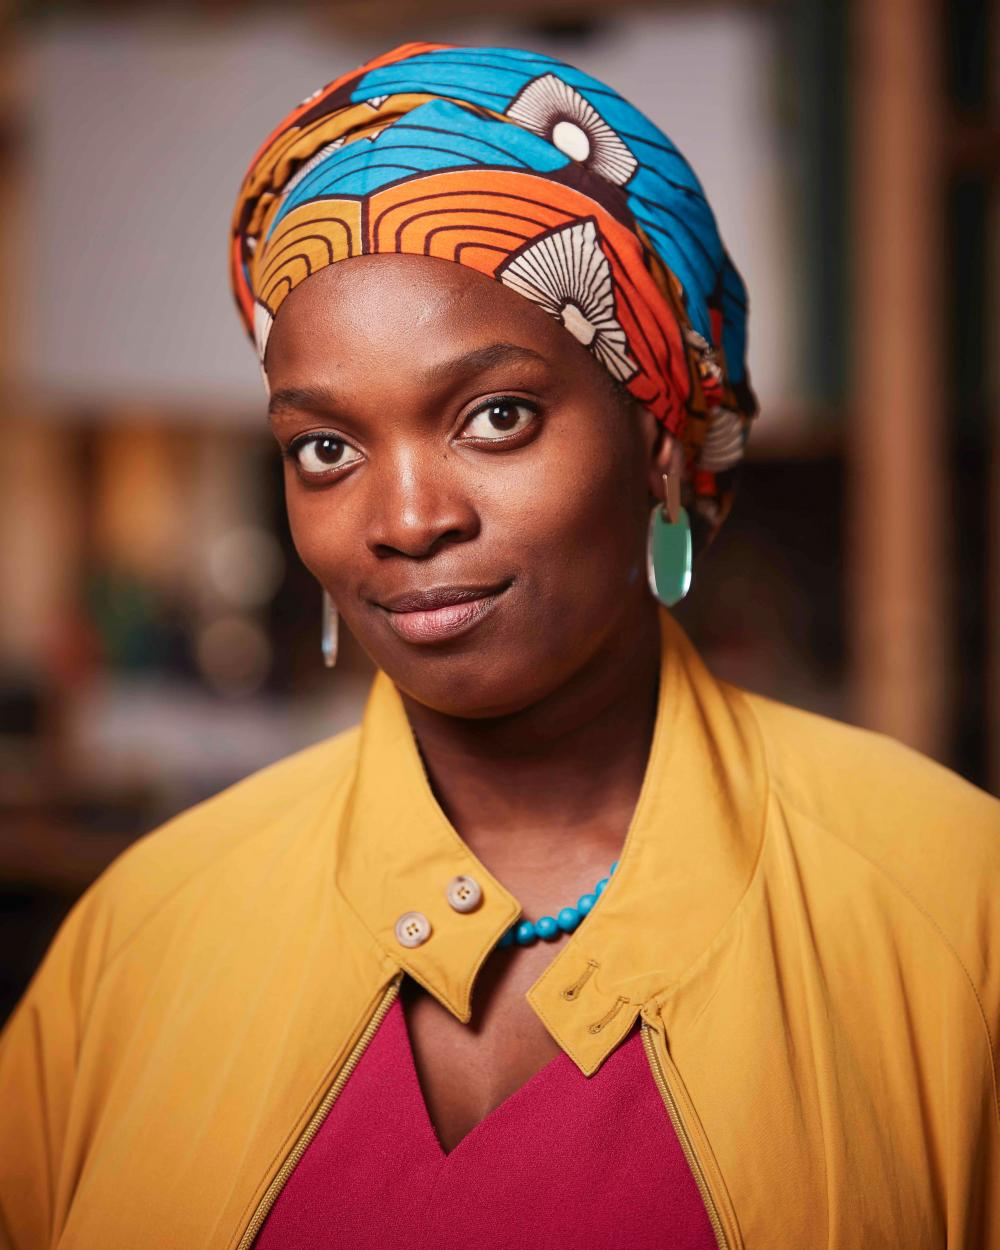 Njideka Akunyili Crosby image associated with her recent appointment to the Studio faculty at the University of Texas at Austin